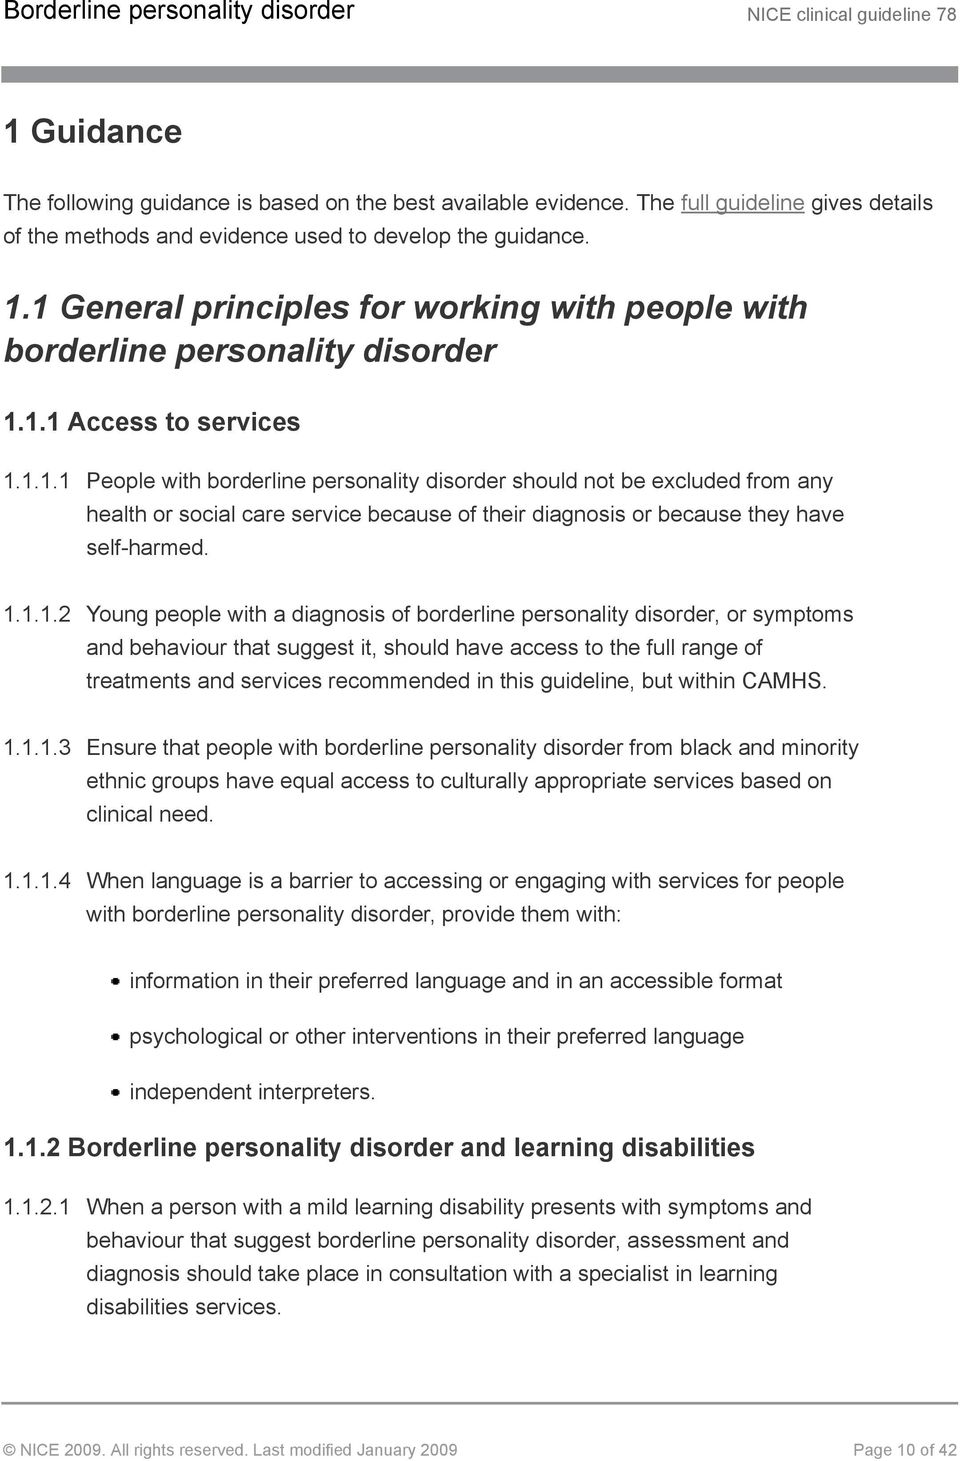 1.1.1.2 Young people with a diagnosis of borderline personality disorder, or symptoms and behaviour that suggest it, should have access to the full range of treatments and services recommended in